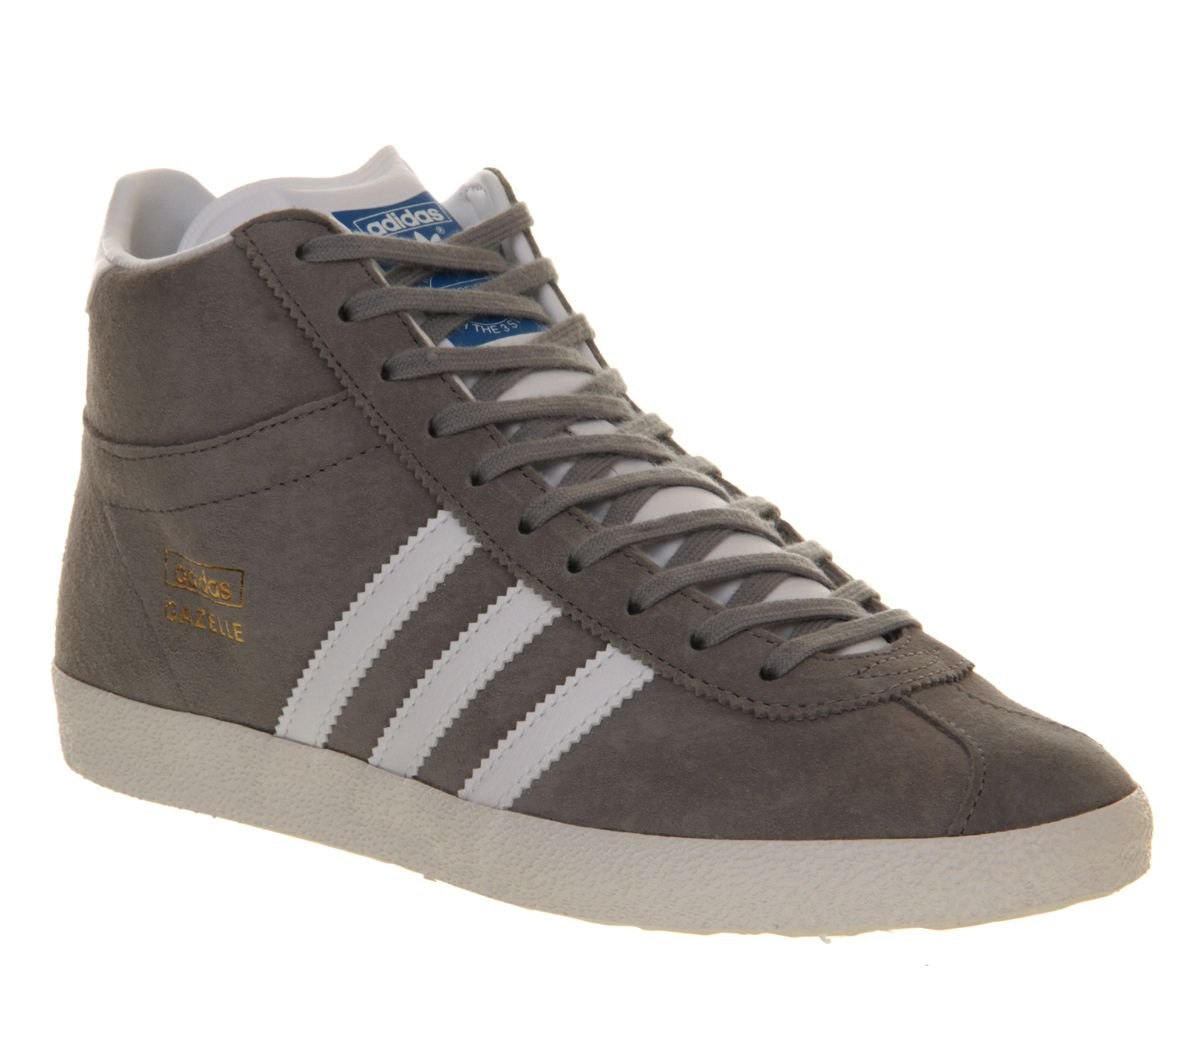 Adidas Gazelle Trainers Cheapest